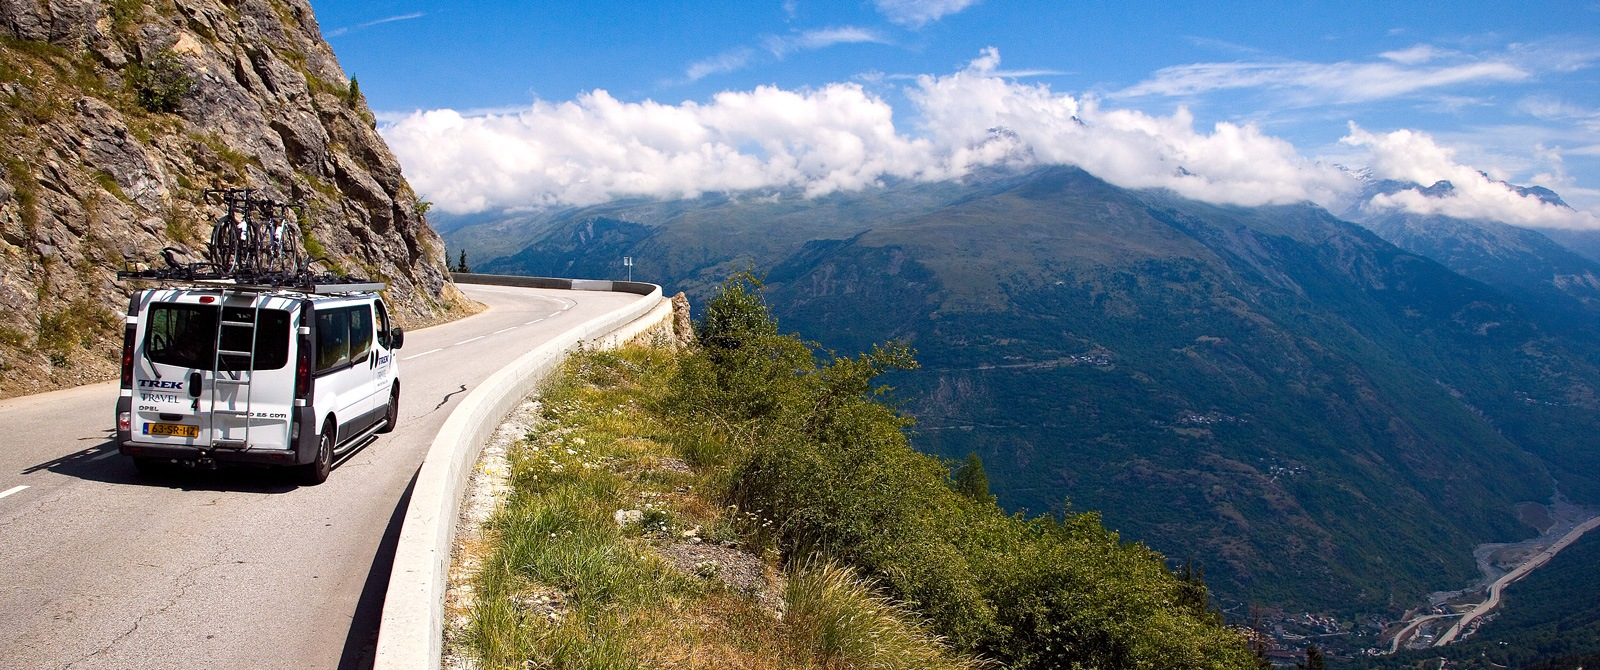 Annecy To Alpe D Huez France Bike Tours Amp Cycling Vacations